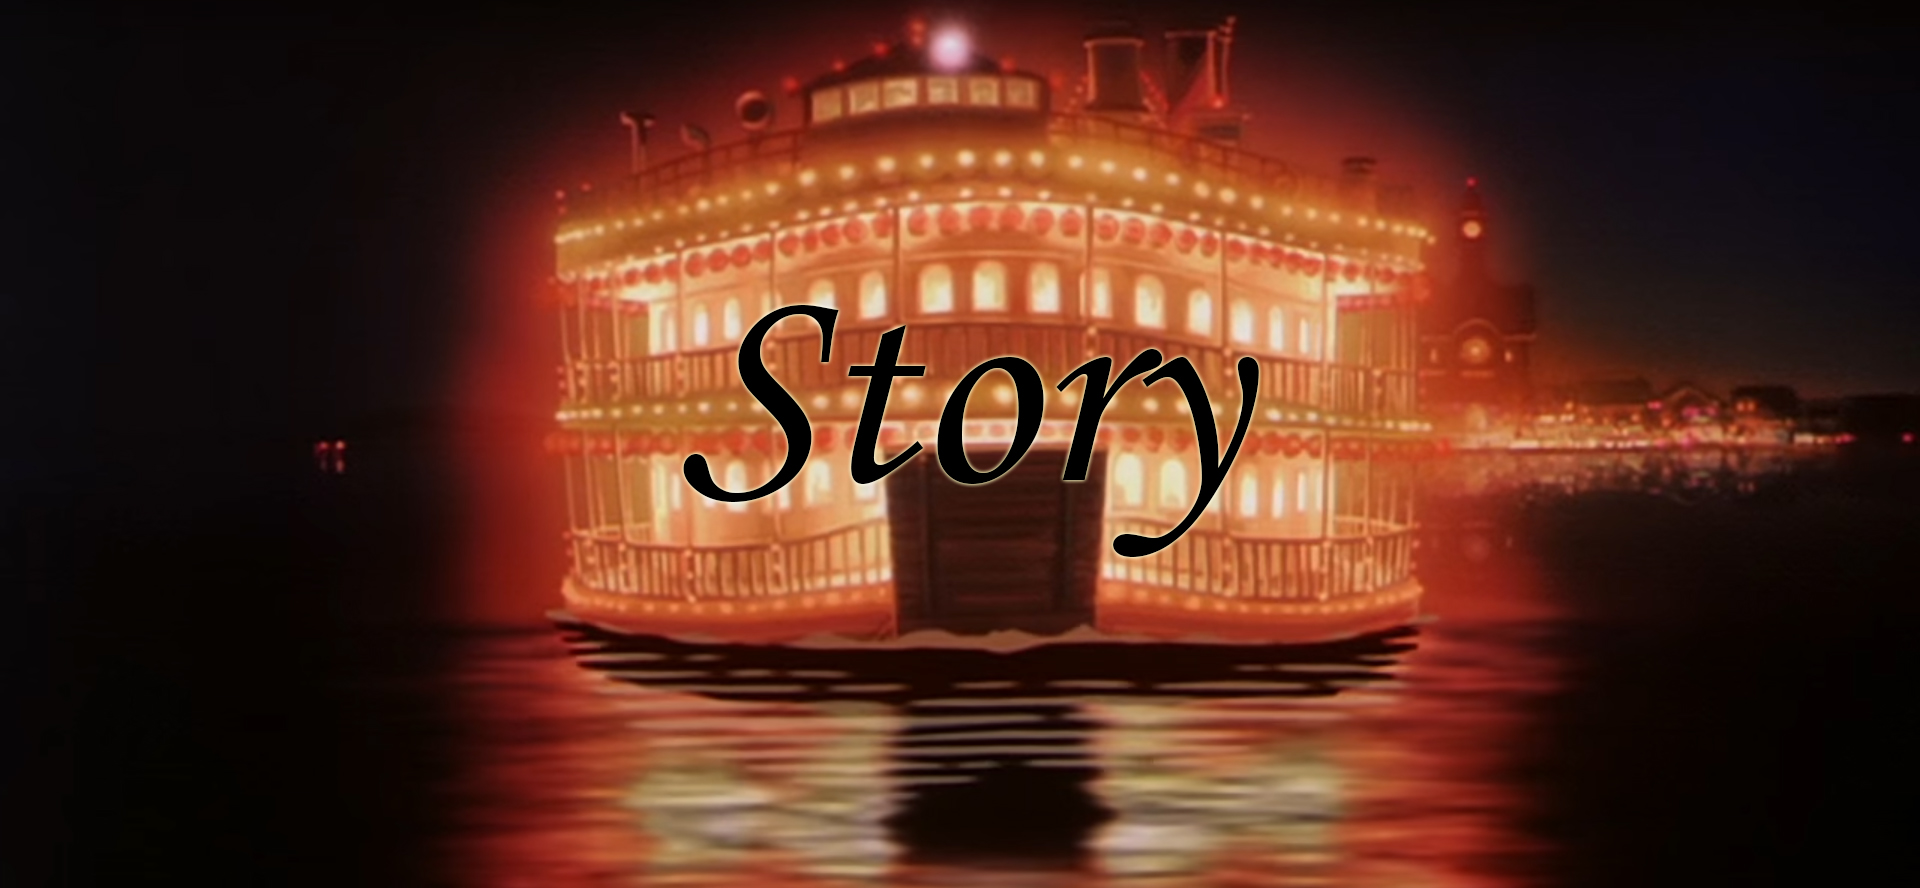 The Story of Ghibli. Spirited Away. Image Credit: Studio Ghibli.